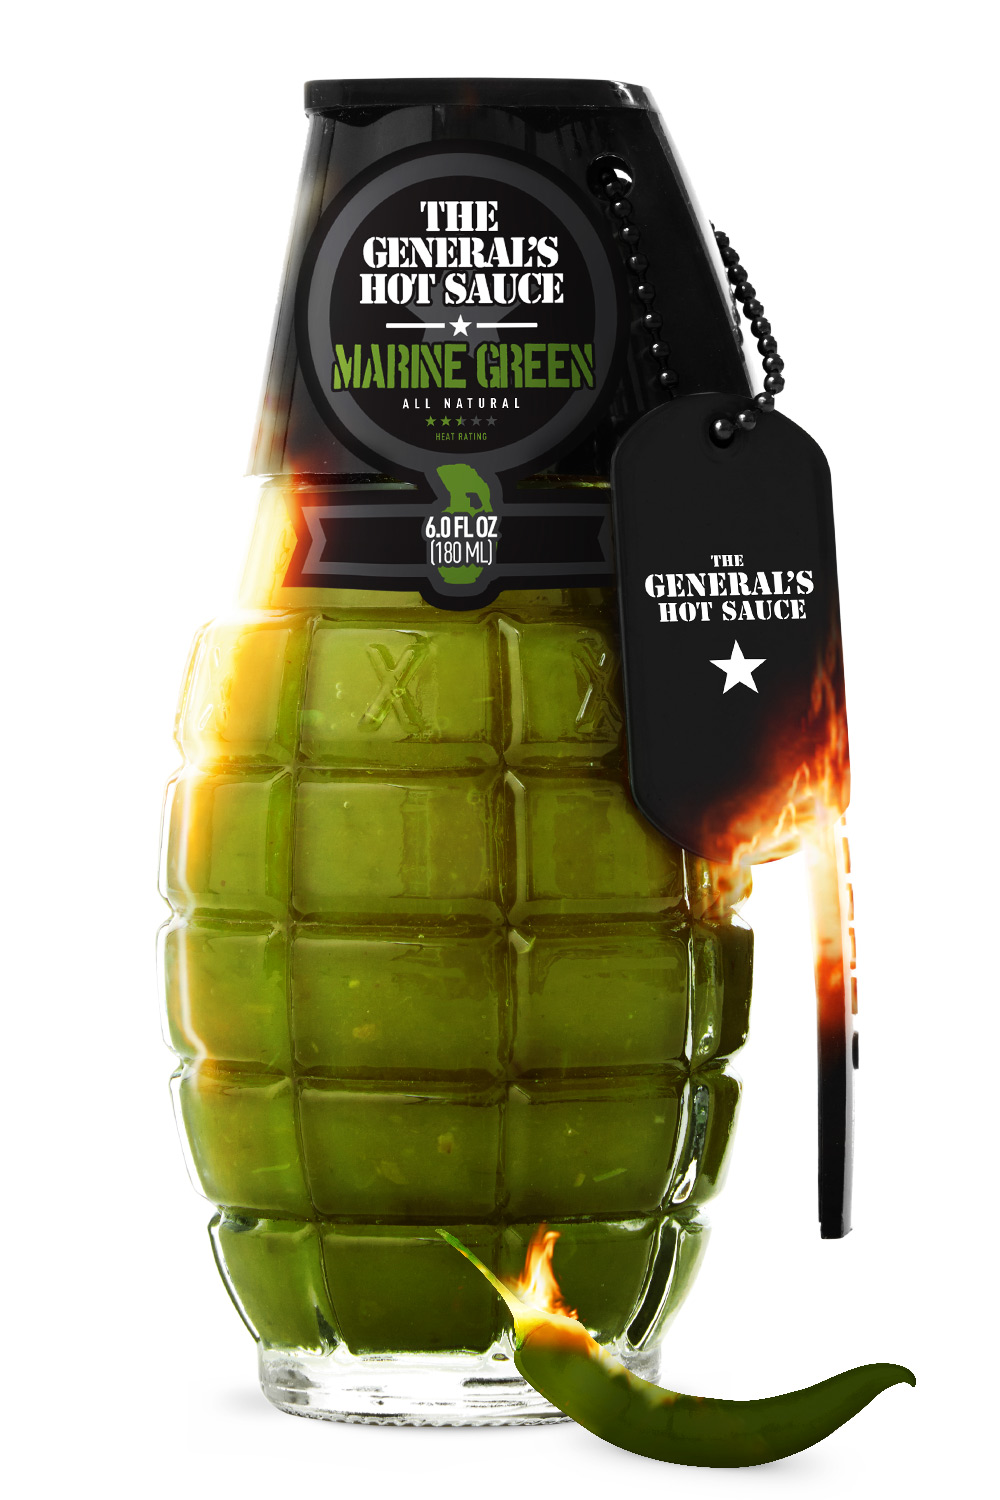 Marine Green - The General's Hot Sauce